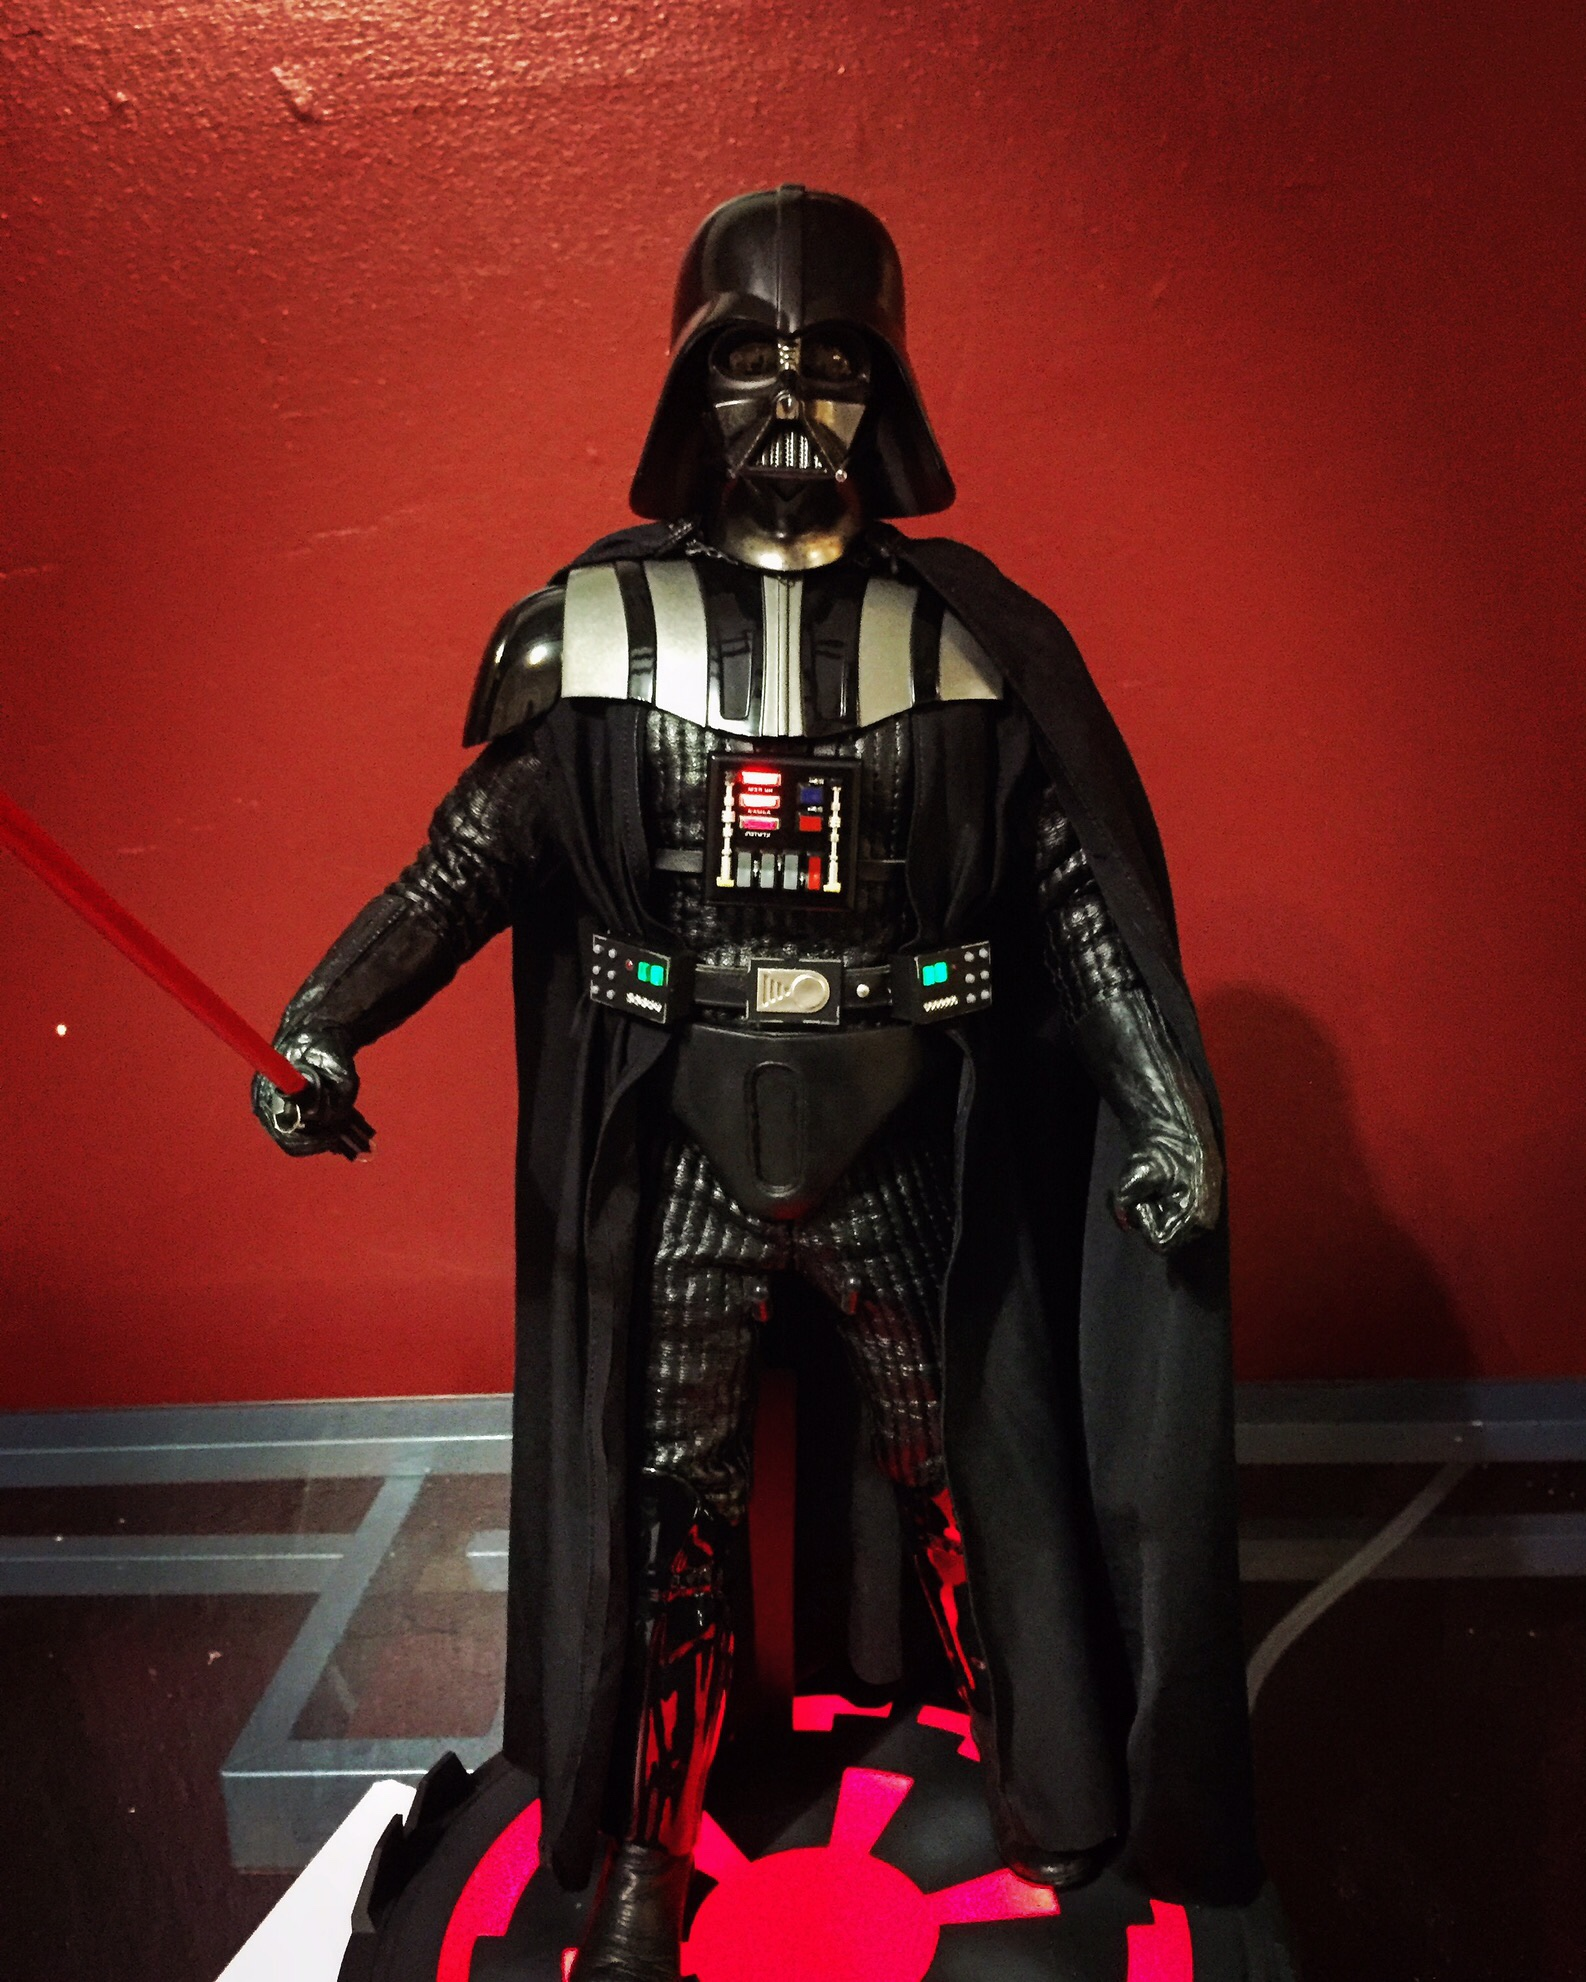 Sideshow 1//6 Darth Vader Tunic from Return of the Jedi Deluxe Edition Figure